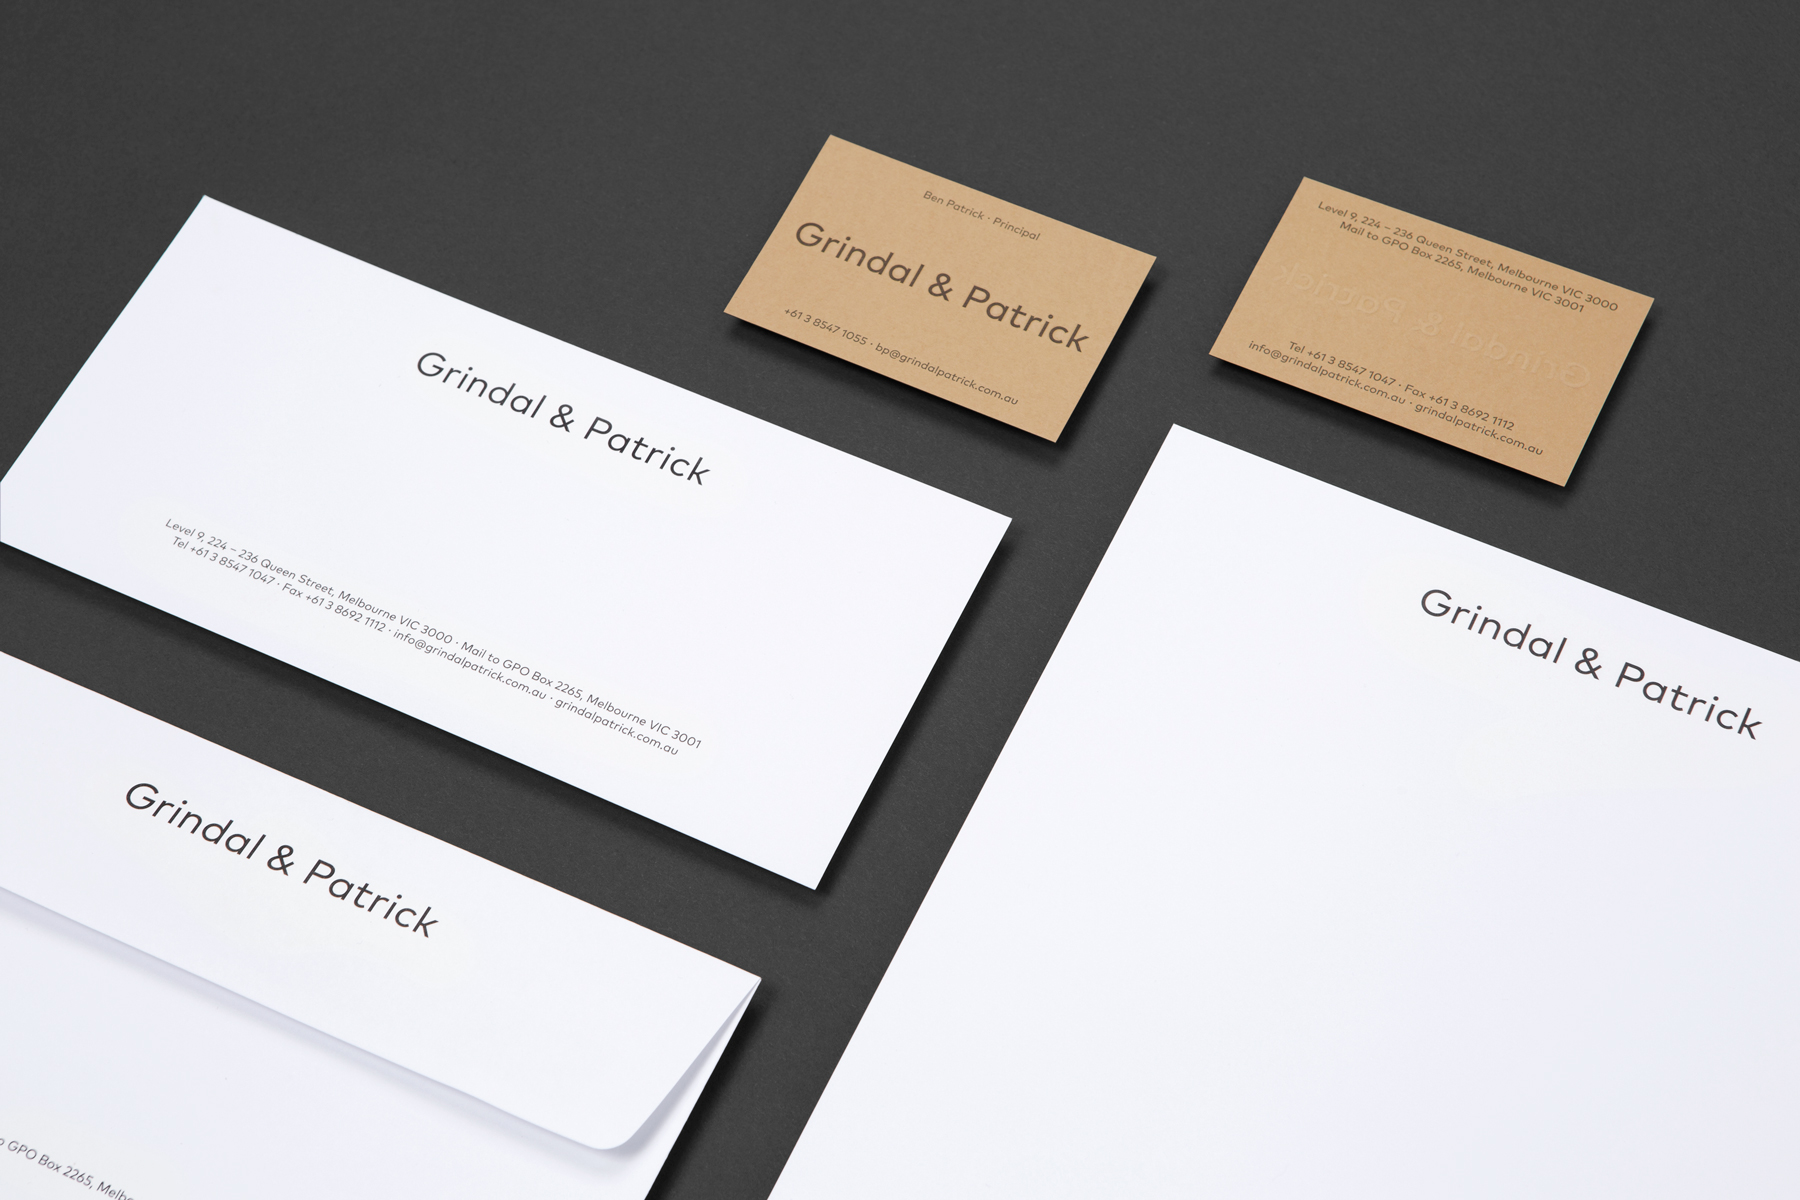 Branding and Visual Identity: Grindal & Patrick